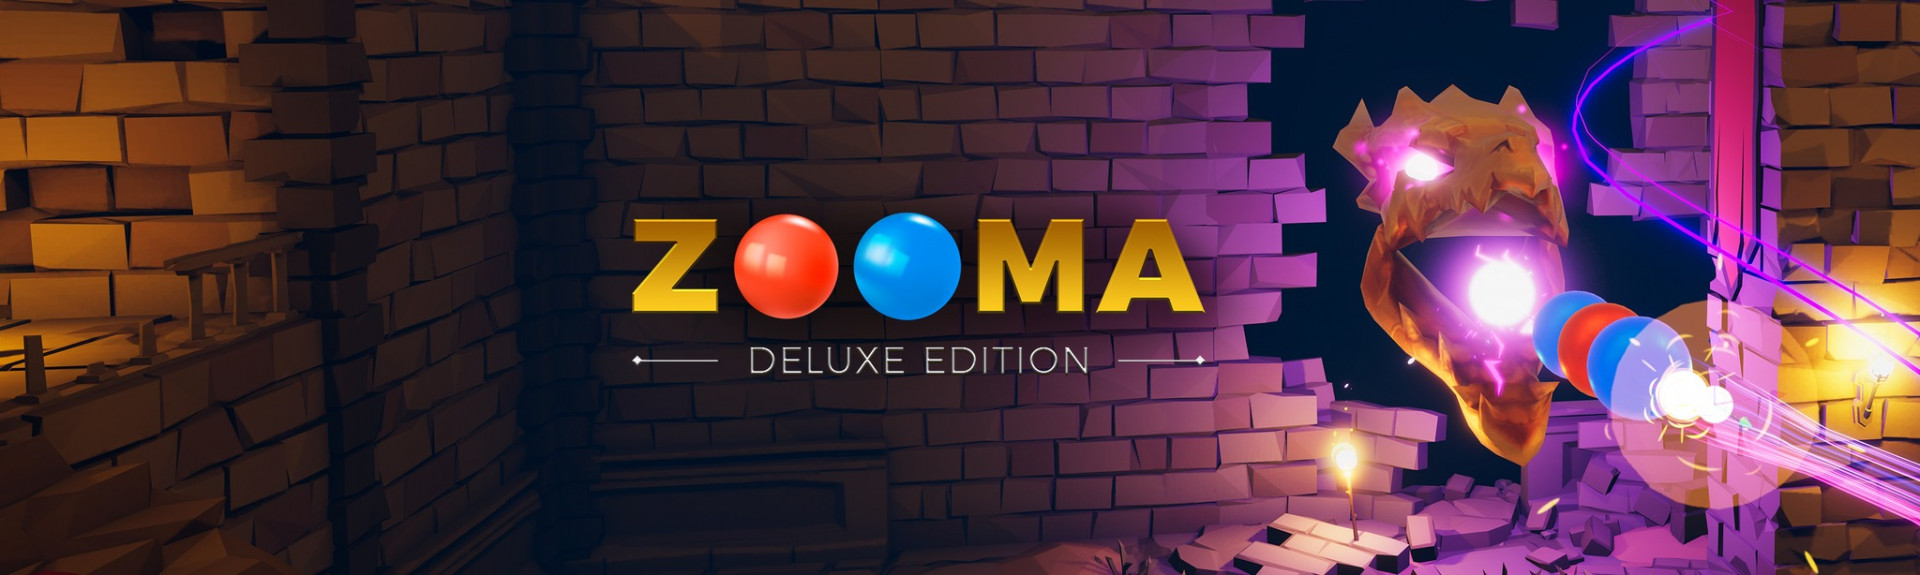 Zooma: Deluxe Edition